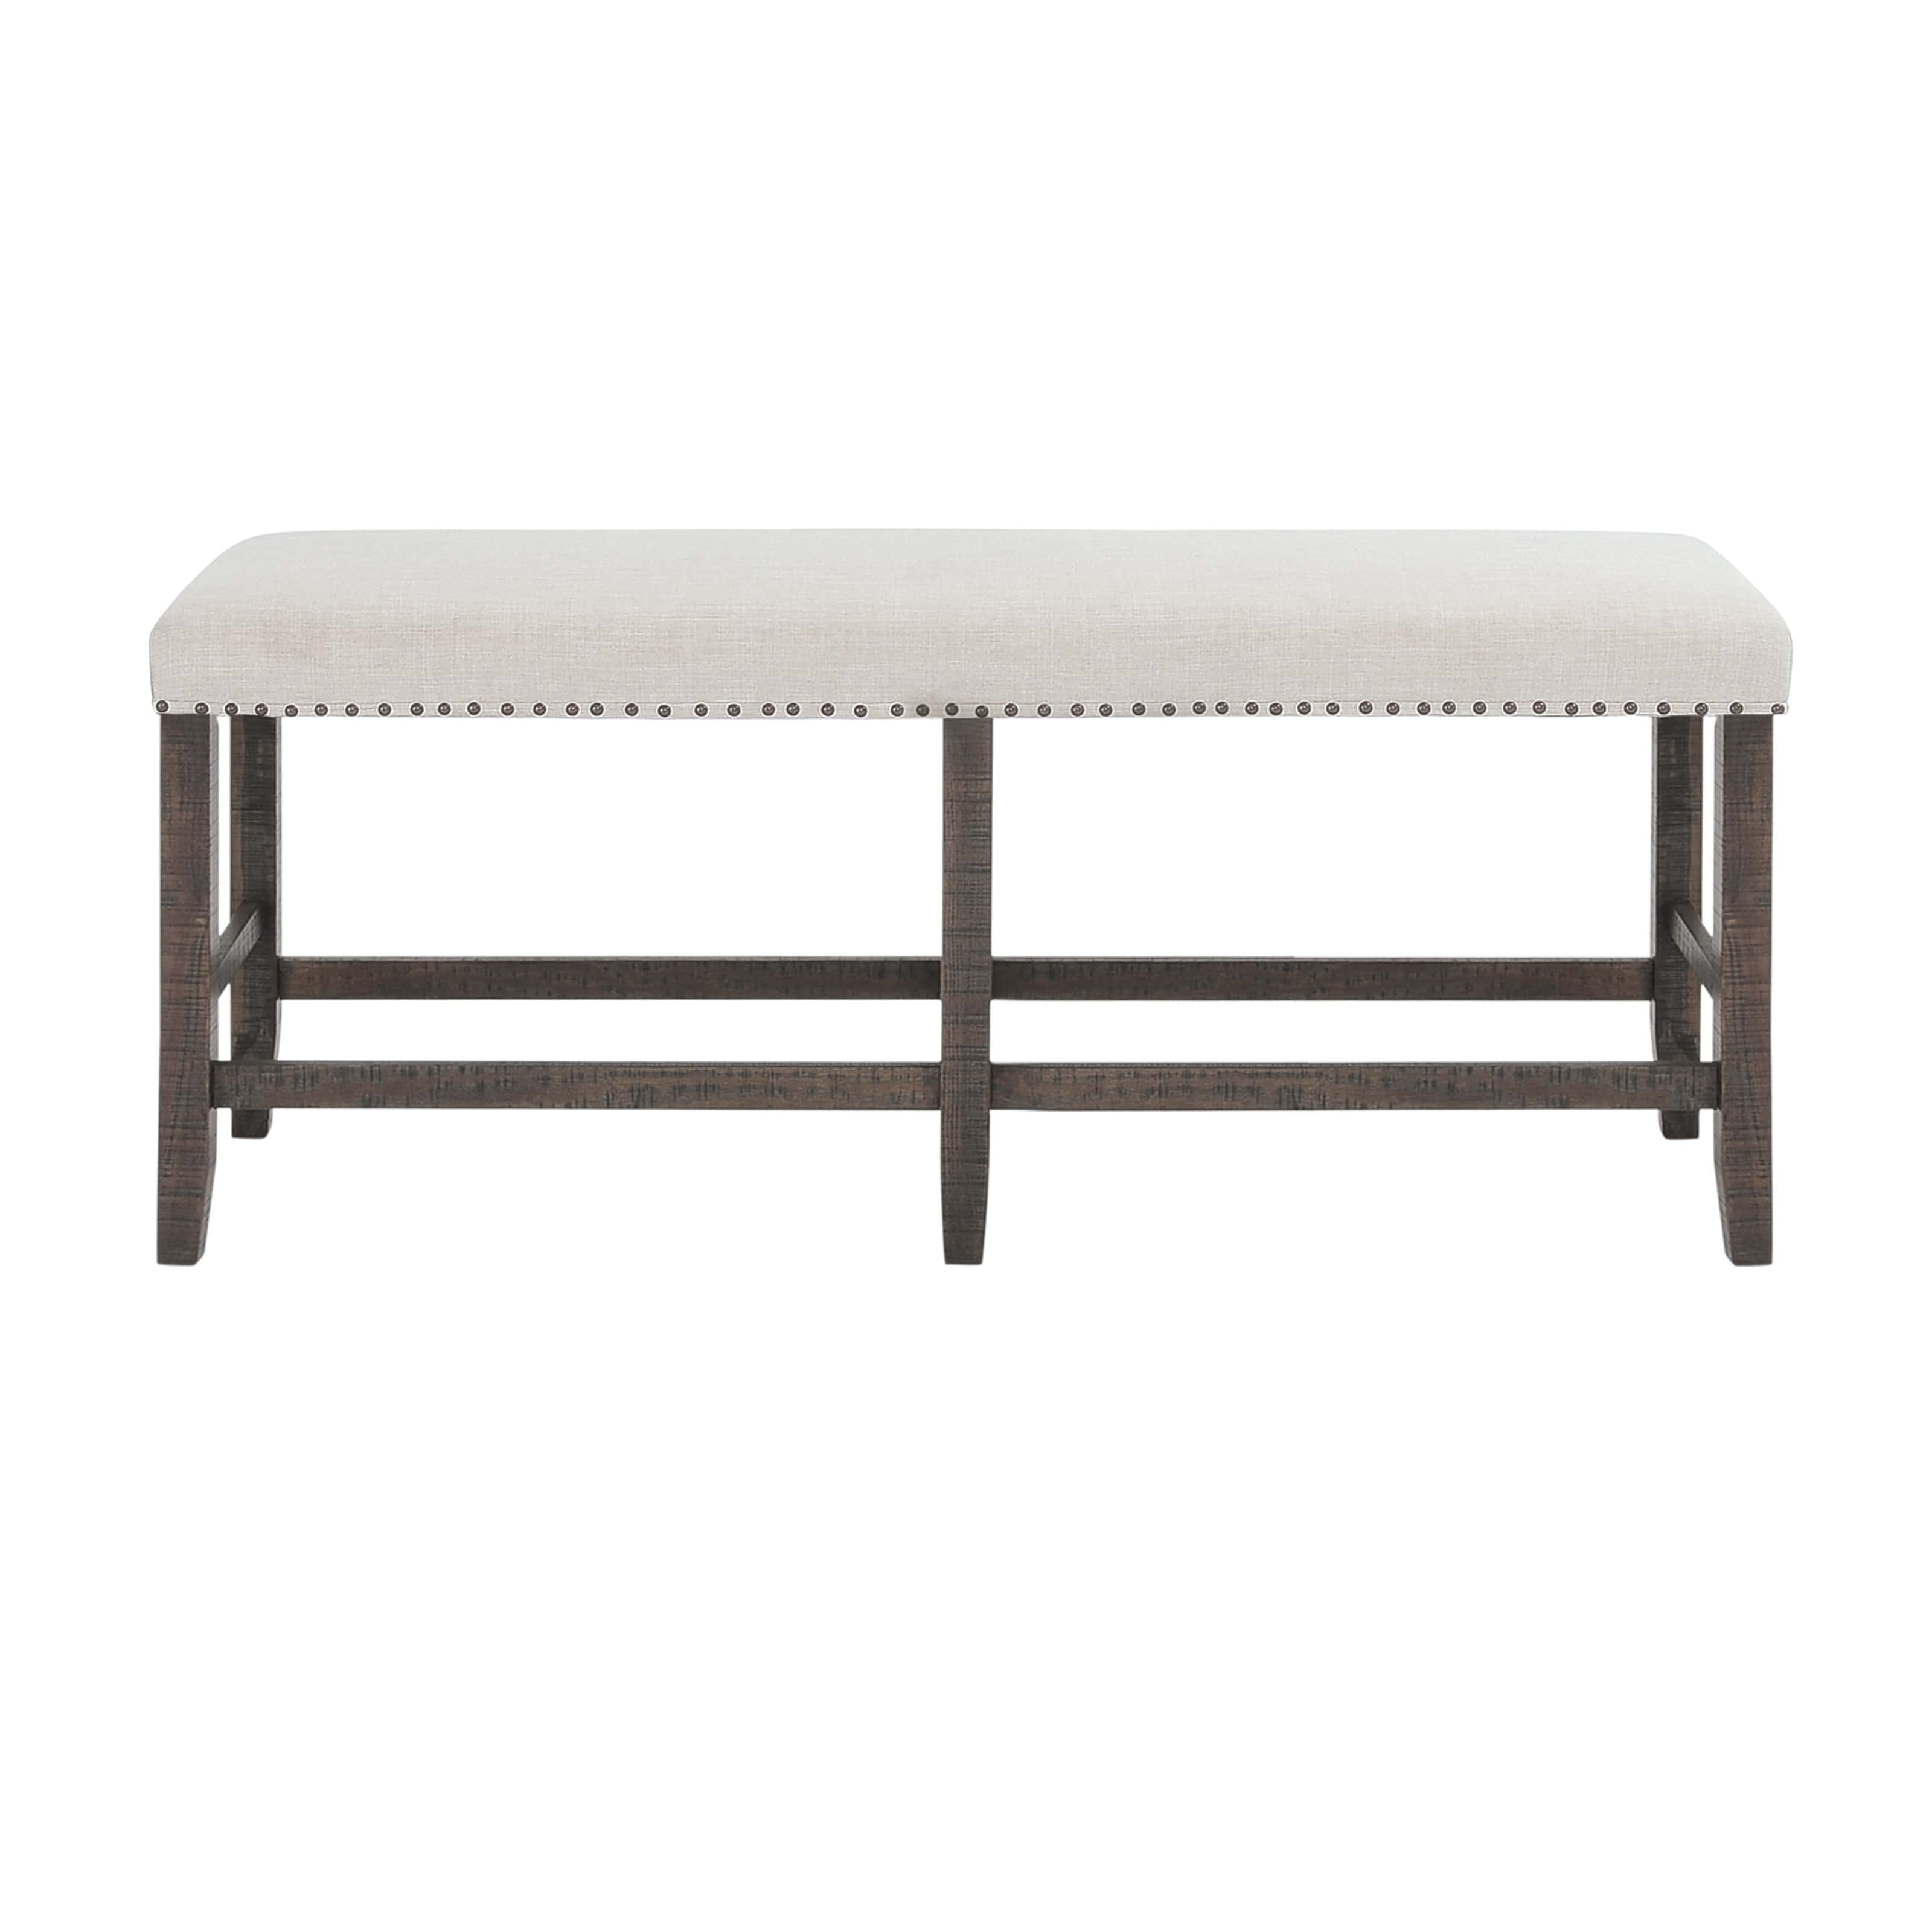 Willow Creek Chocolate Brown Upholstery Counter Height Bench By Jofran